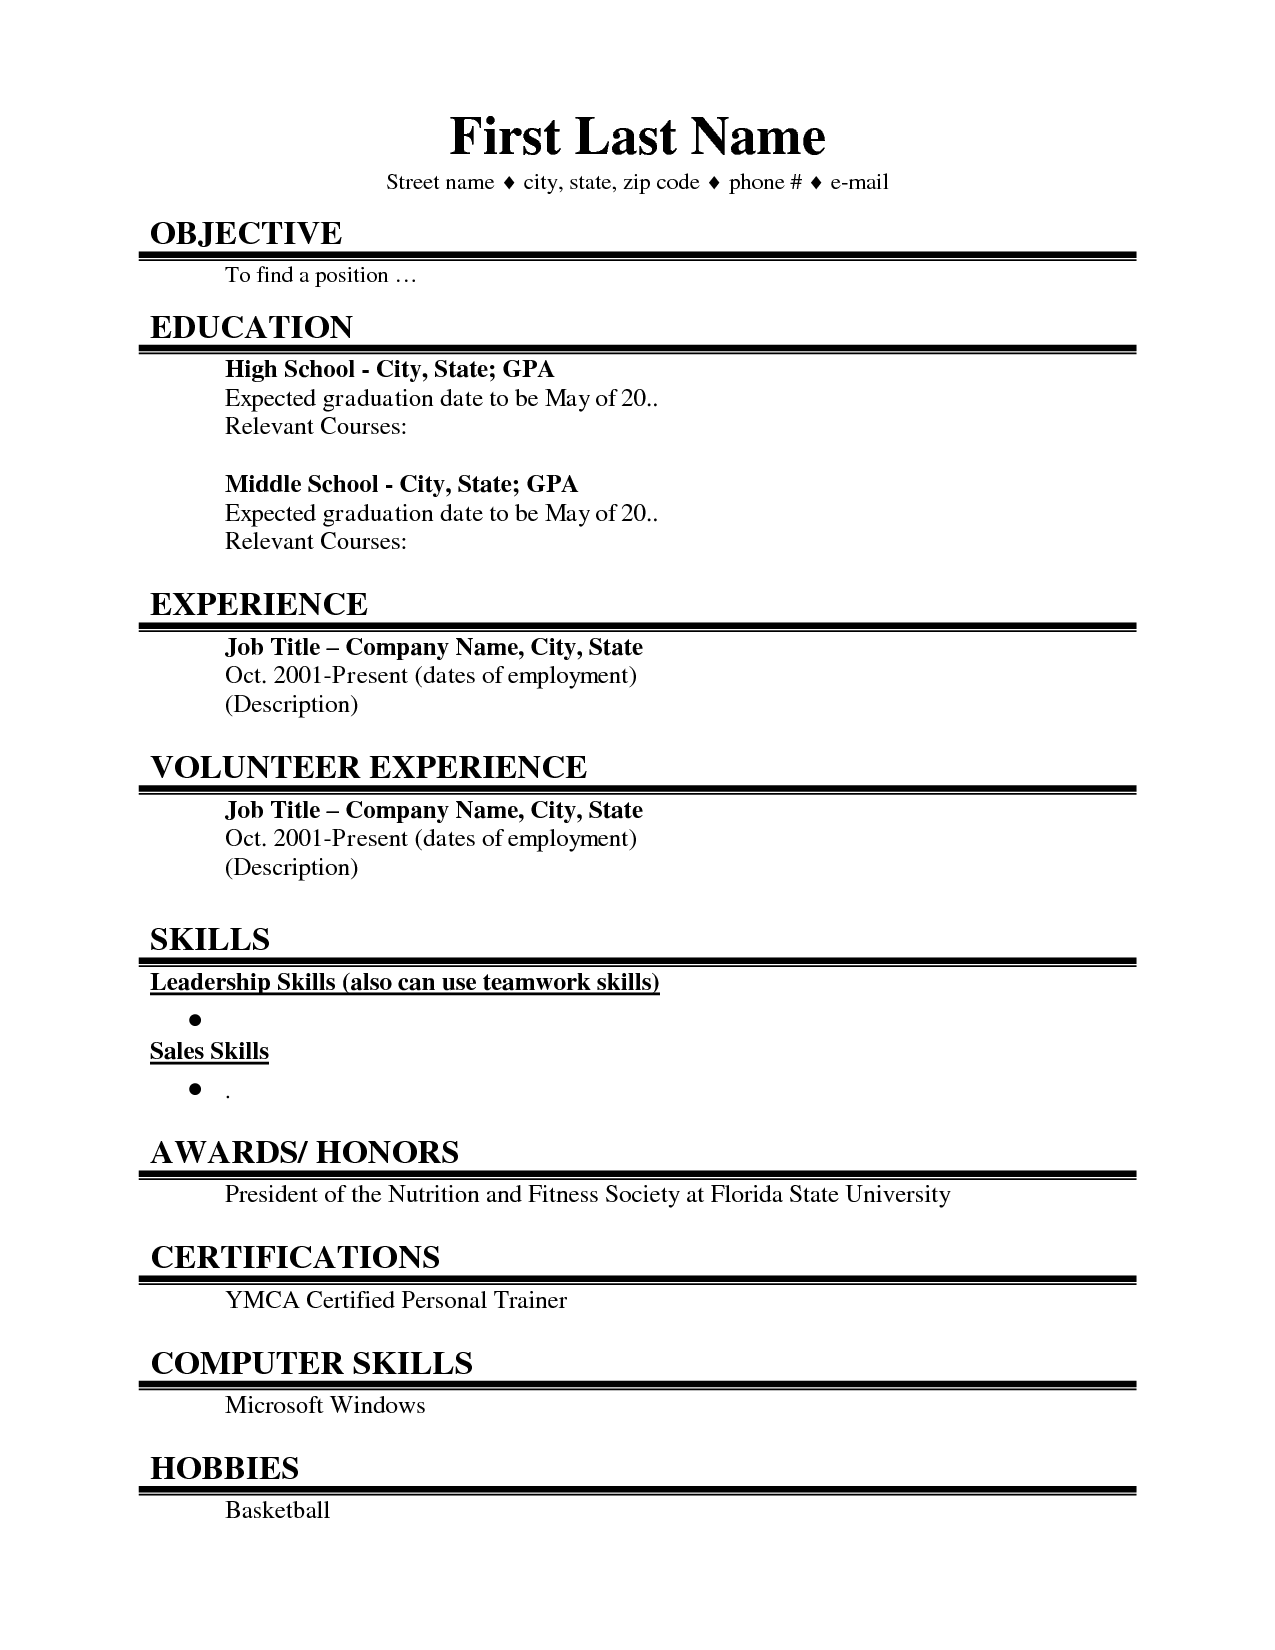 How To Write A Resume For Students With No Experience First Job Resume Google Search Resume Pinterest